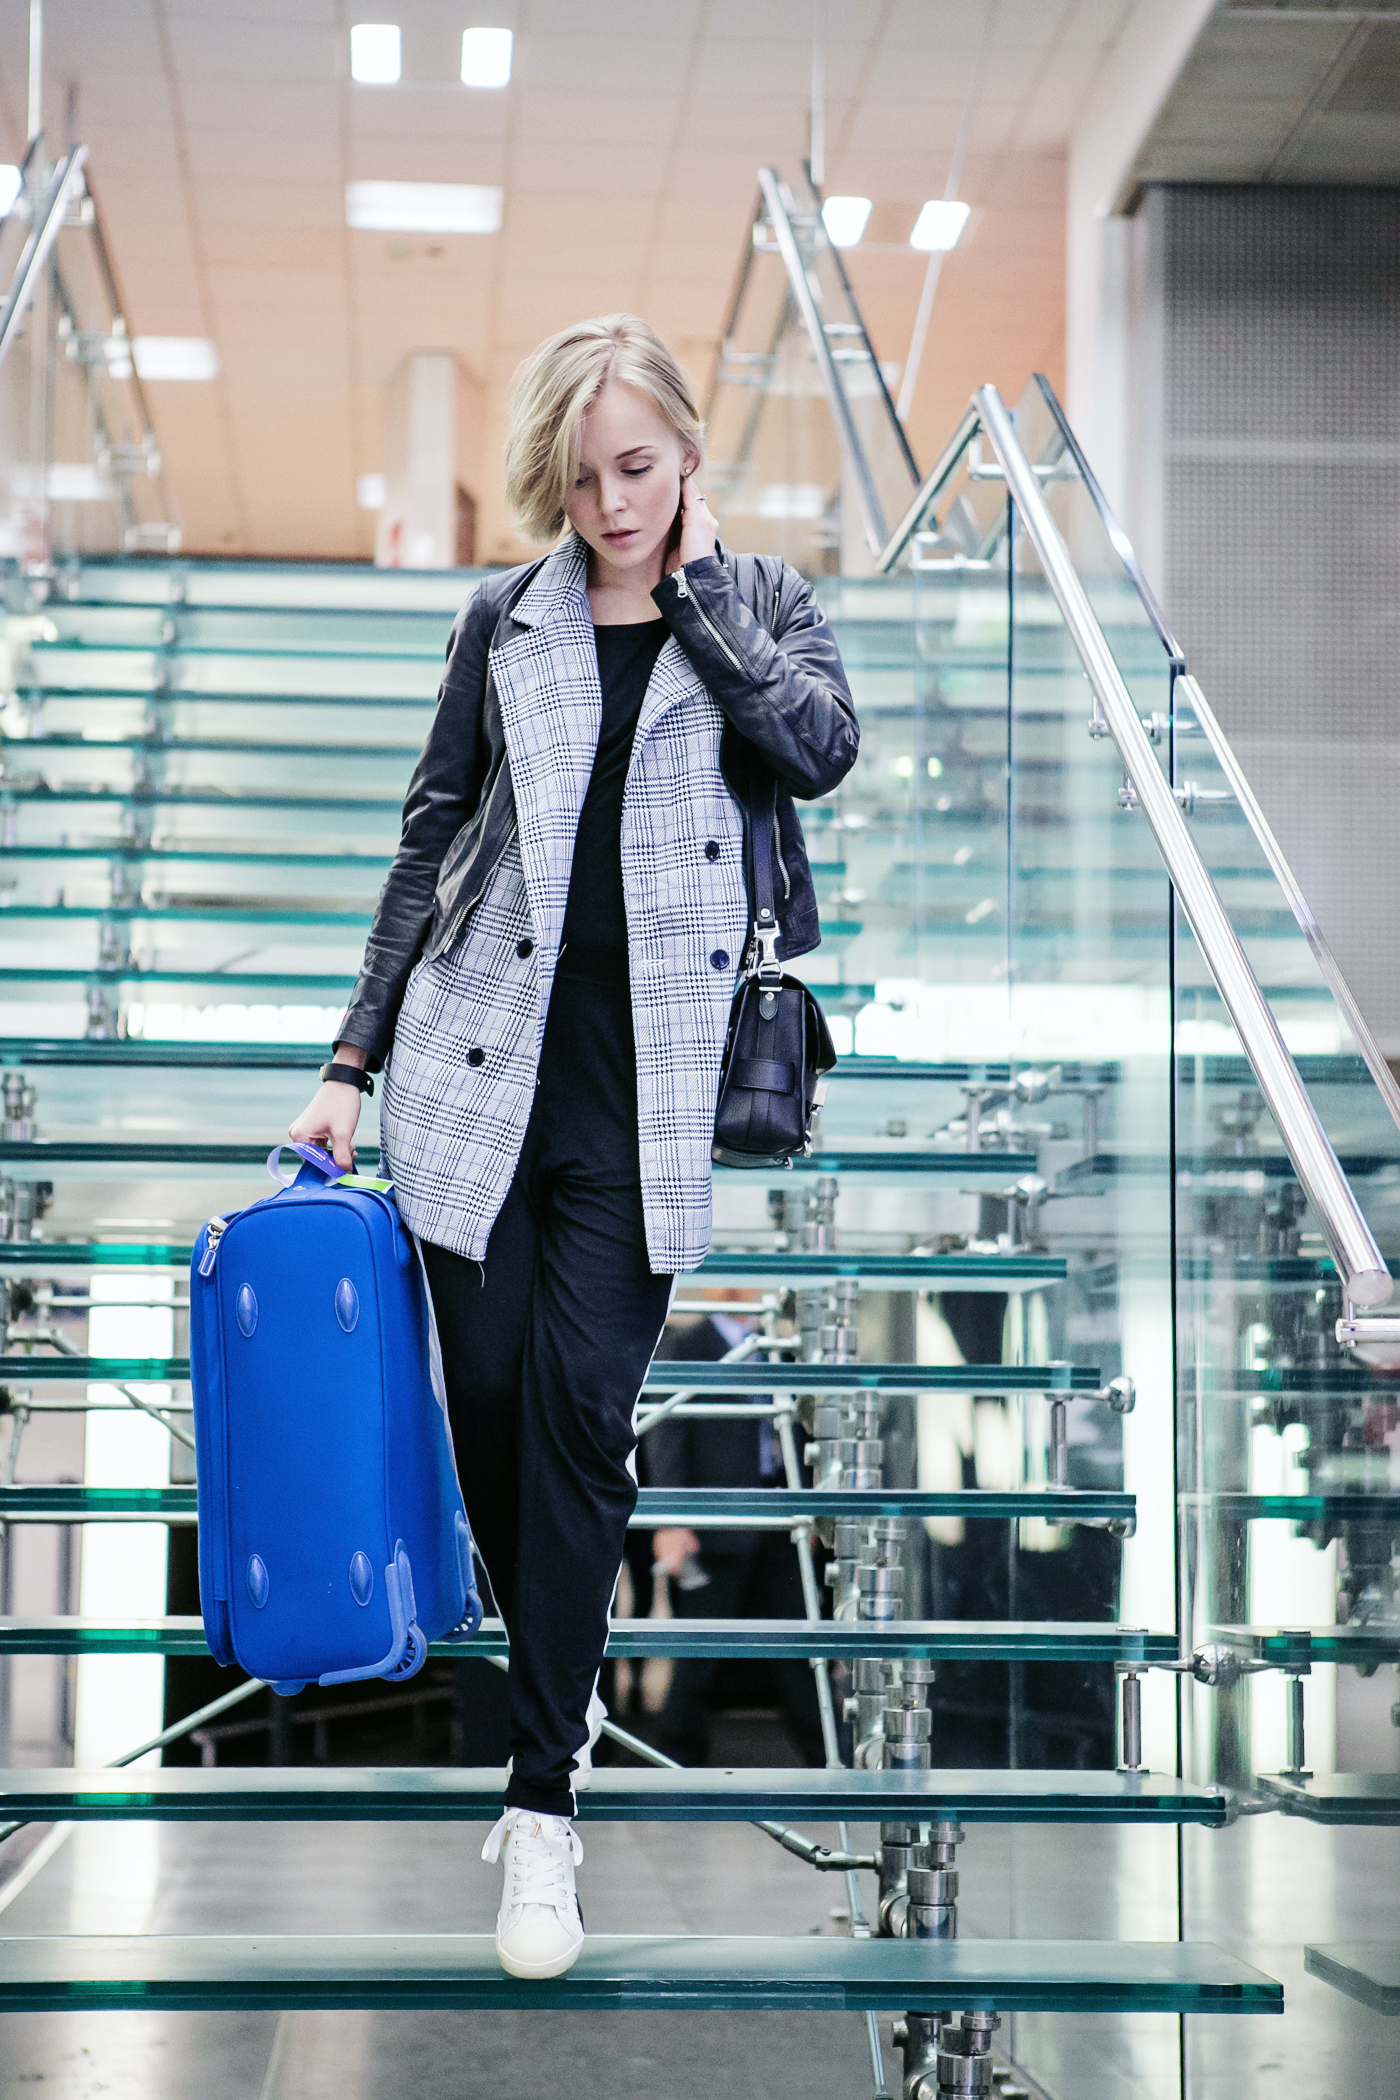 darya kamalova russian italian fashion blogger from thecablook com is wearing asos cotton pants, baldinini black leather biker jacket, be&d heel sneakers and ps11 proenza schouler bag-3 copy